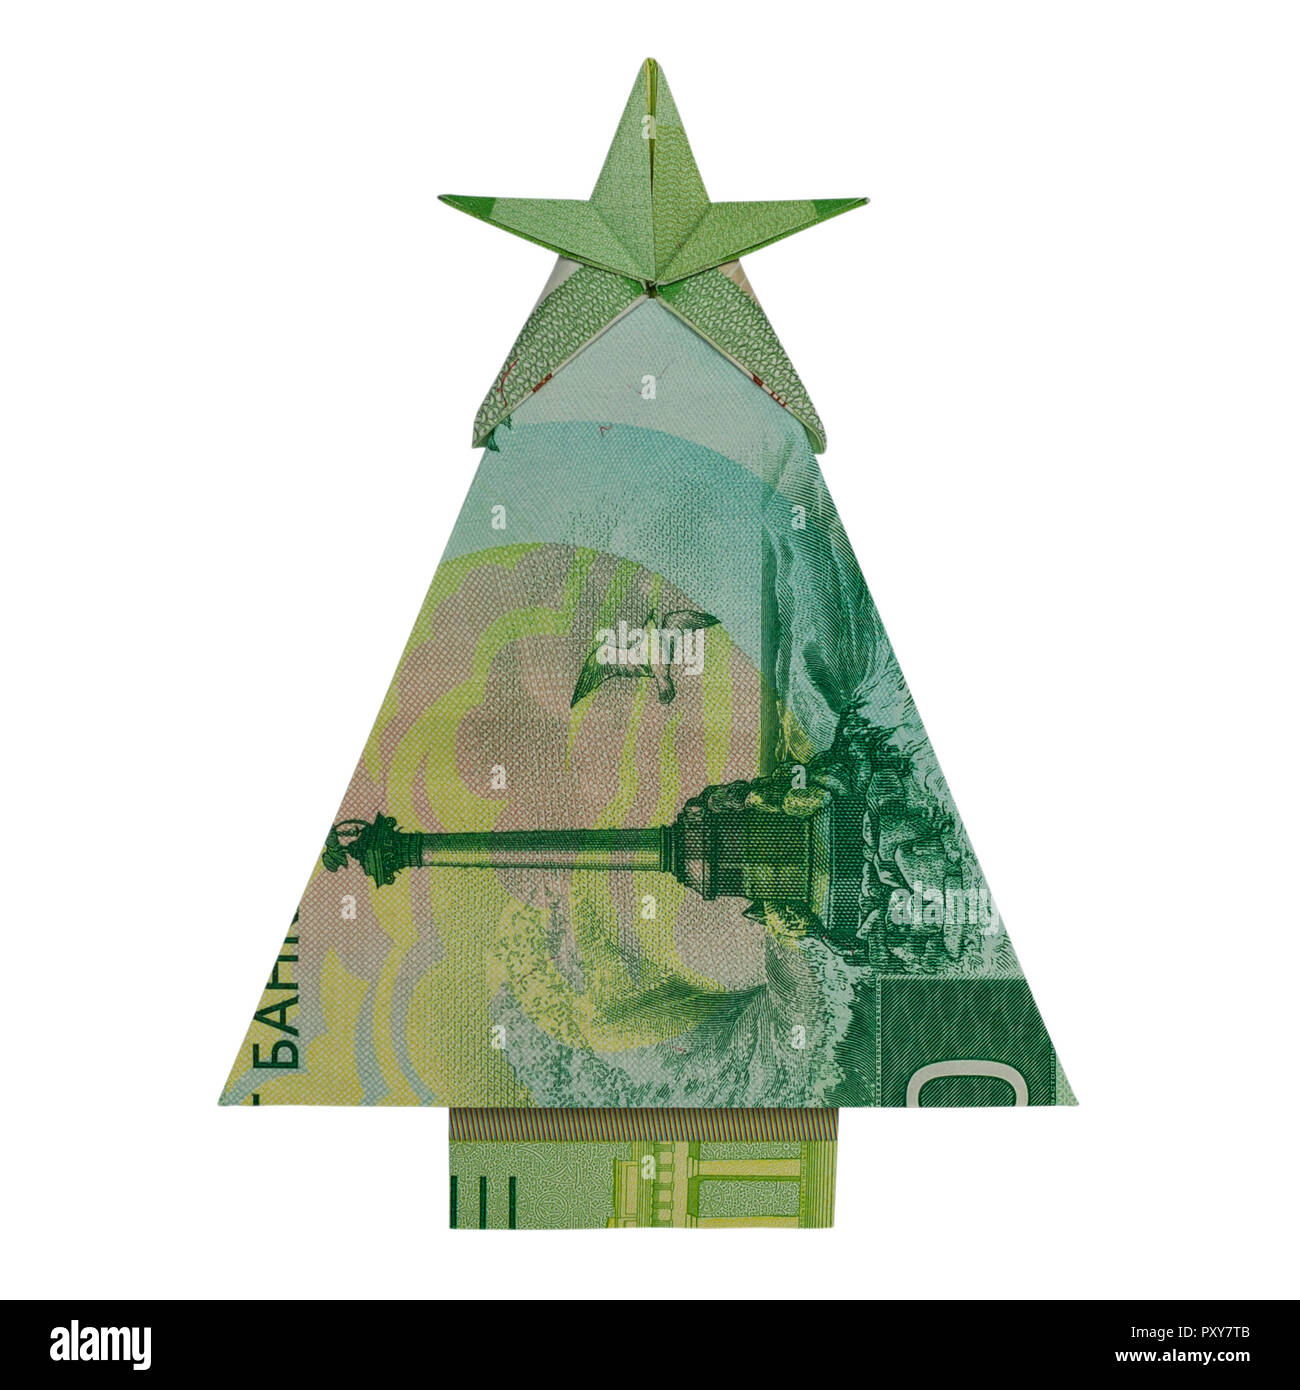 Dollar Bill Origami Christmas Tree: Money Origami CHRISTMAS TREE Folded With 200 Russian